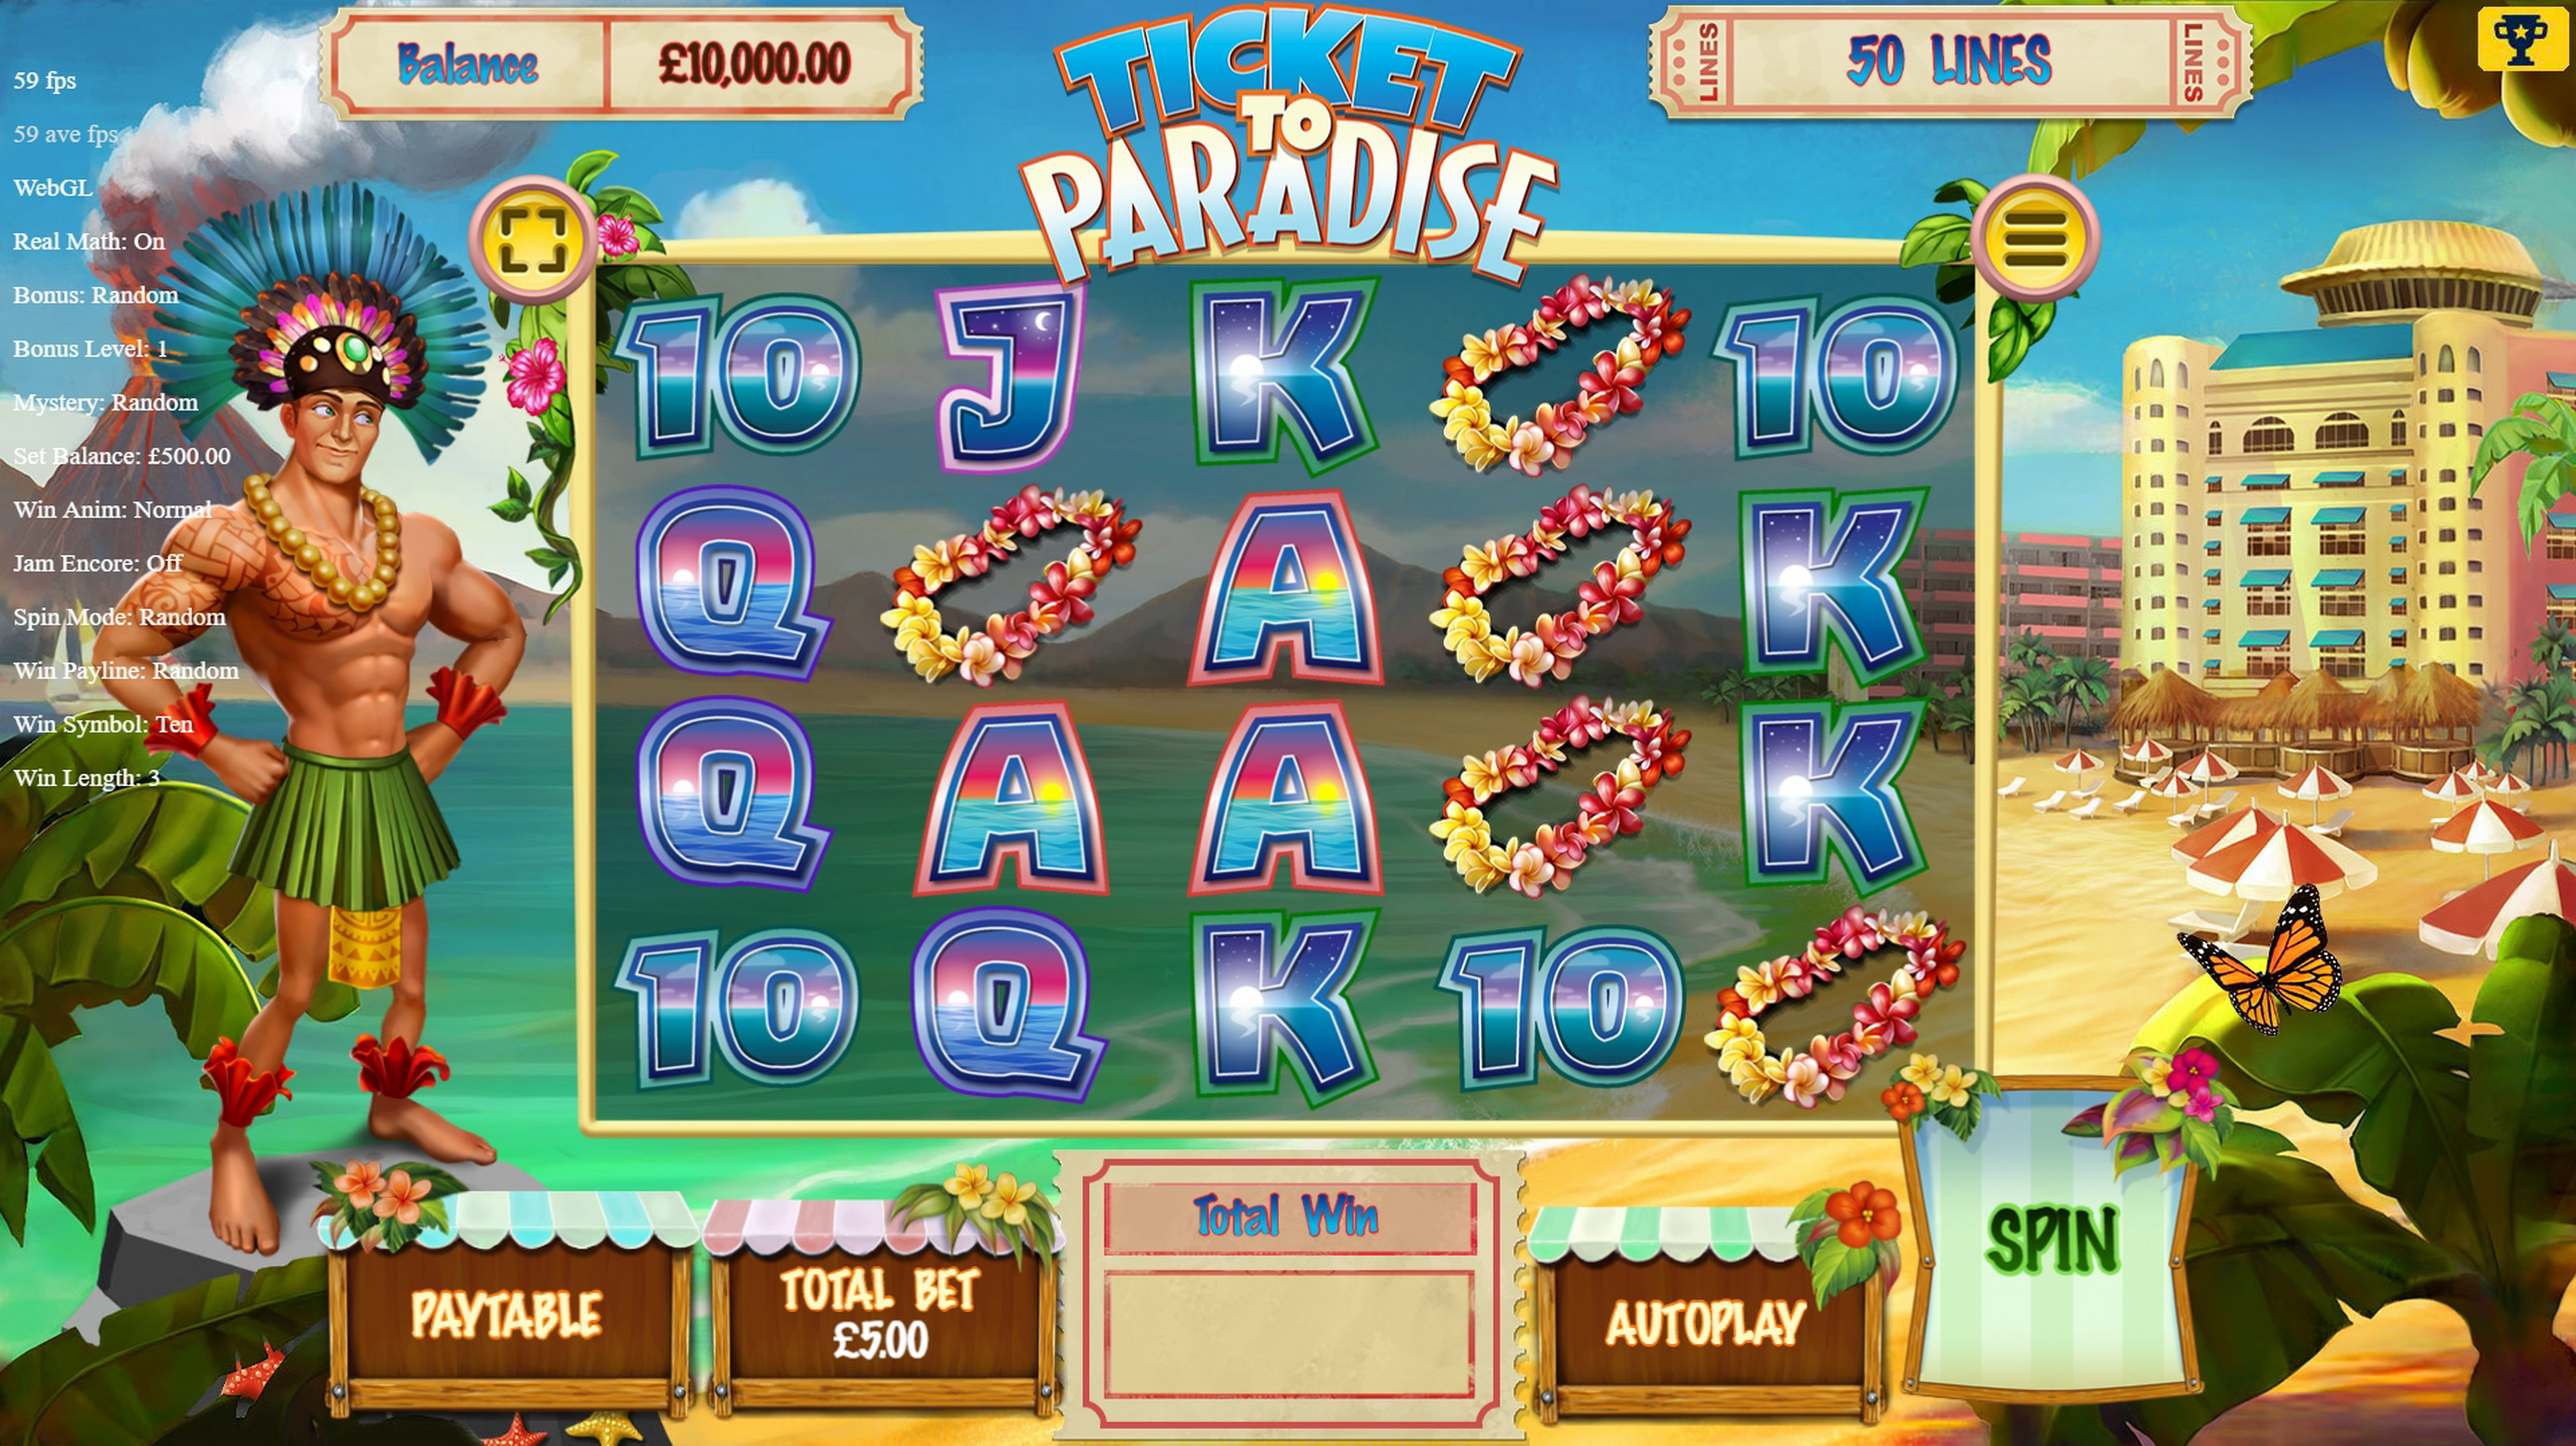 Reels in Ticket to Paradise Slot Game by Asylum Labs Inc.